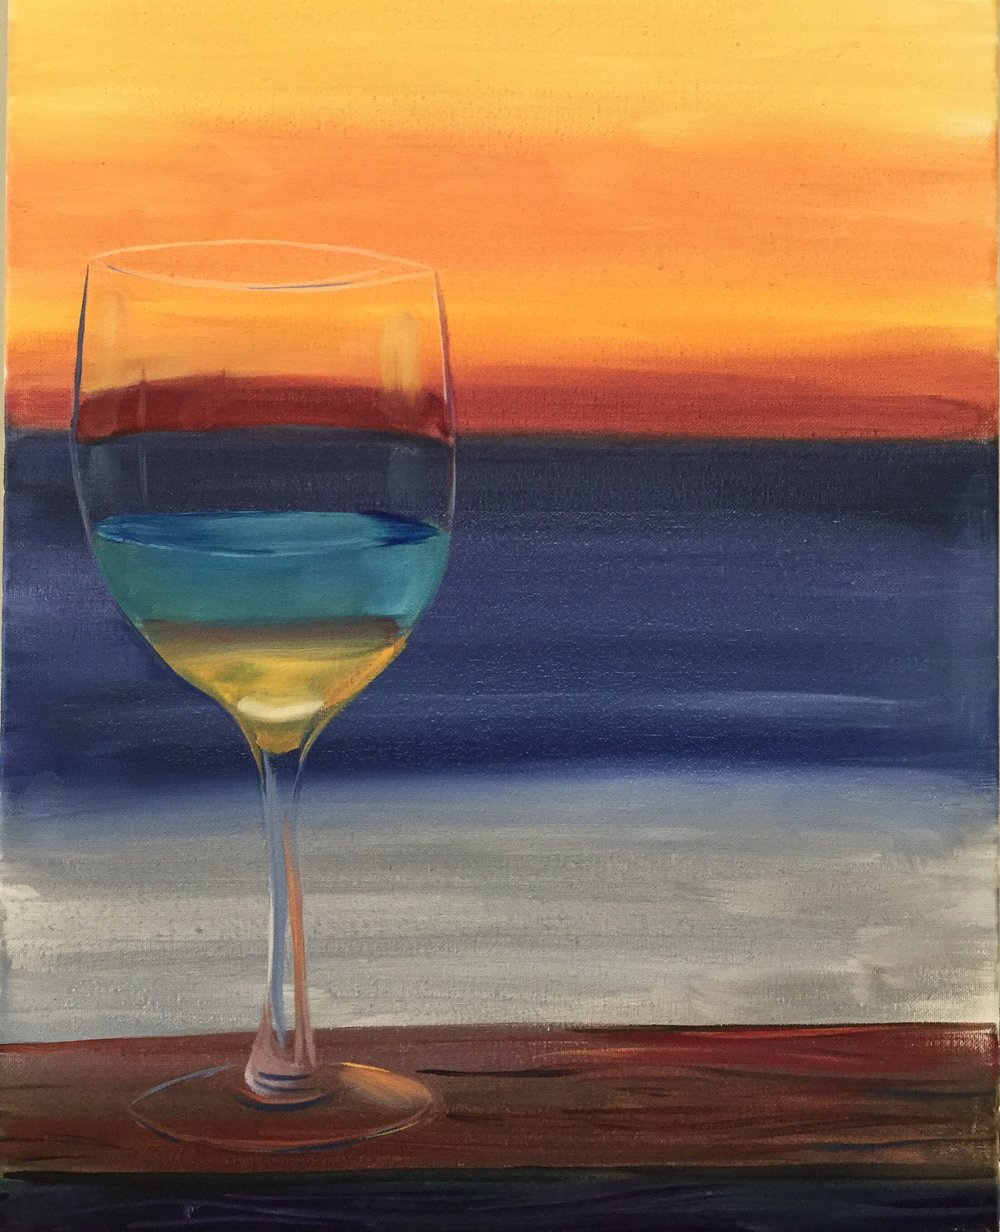 Sip & Paint at Recline Ridge Winery - A Sunset Orange this beautiful needs to painted. And it's all step by step instructed with local artist Adam Meikle.